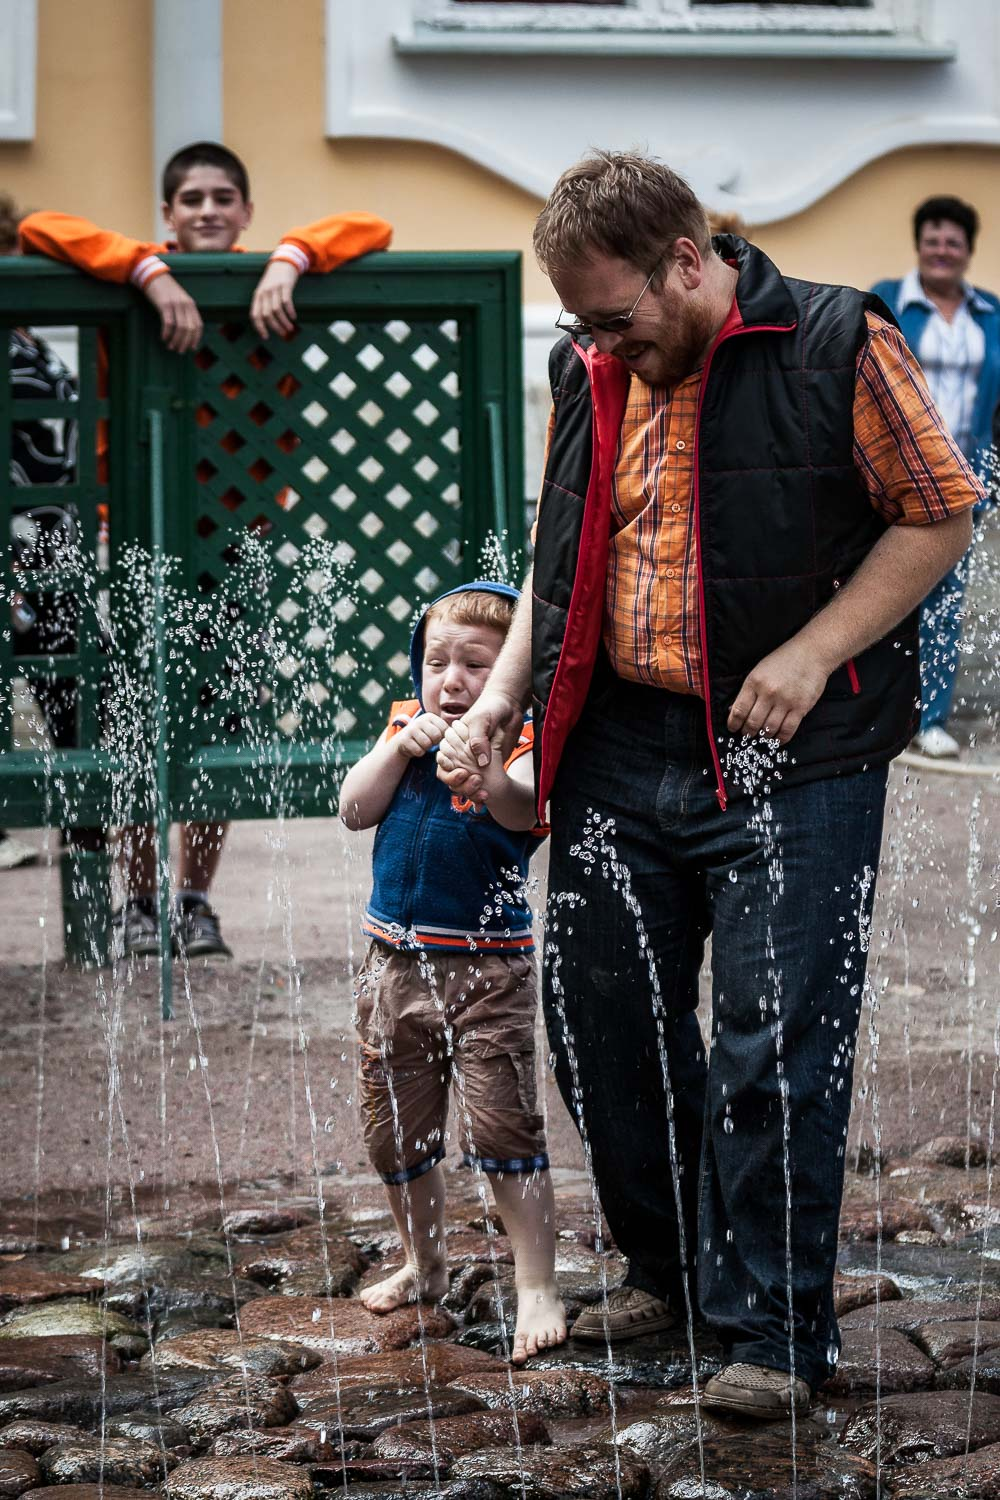 A young boy, surprised by water sprouting from the ground at Peterhof Palace near St. Petersburg, Russia.